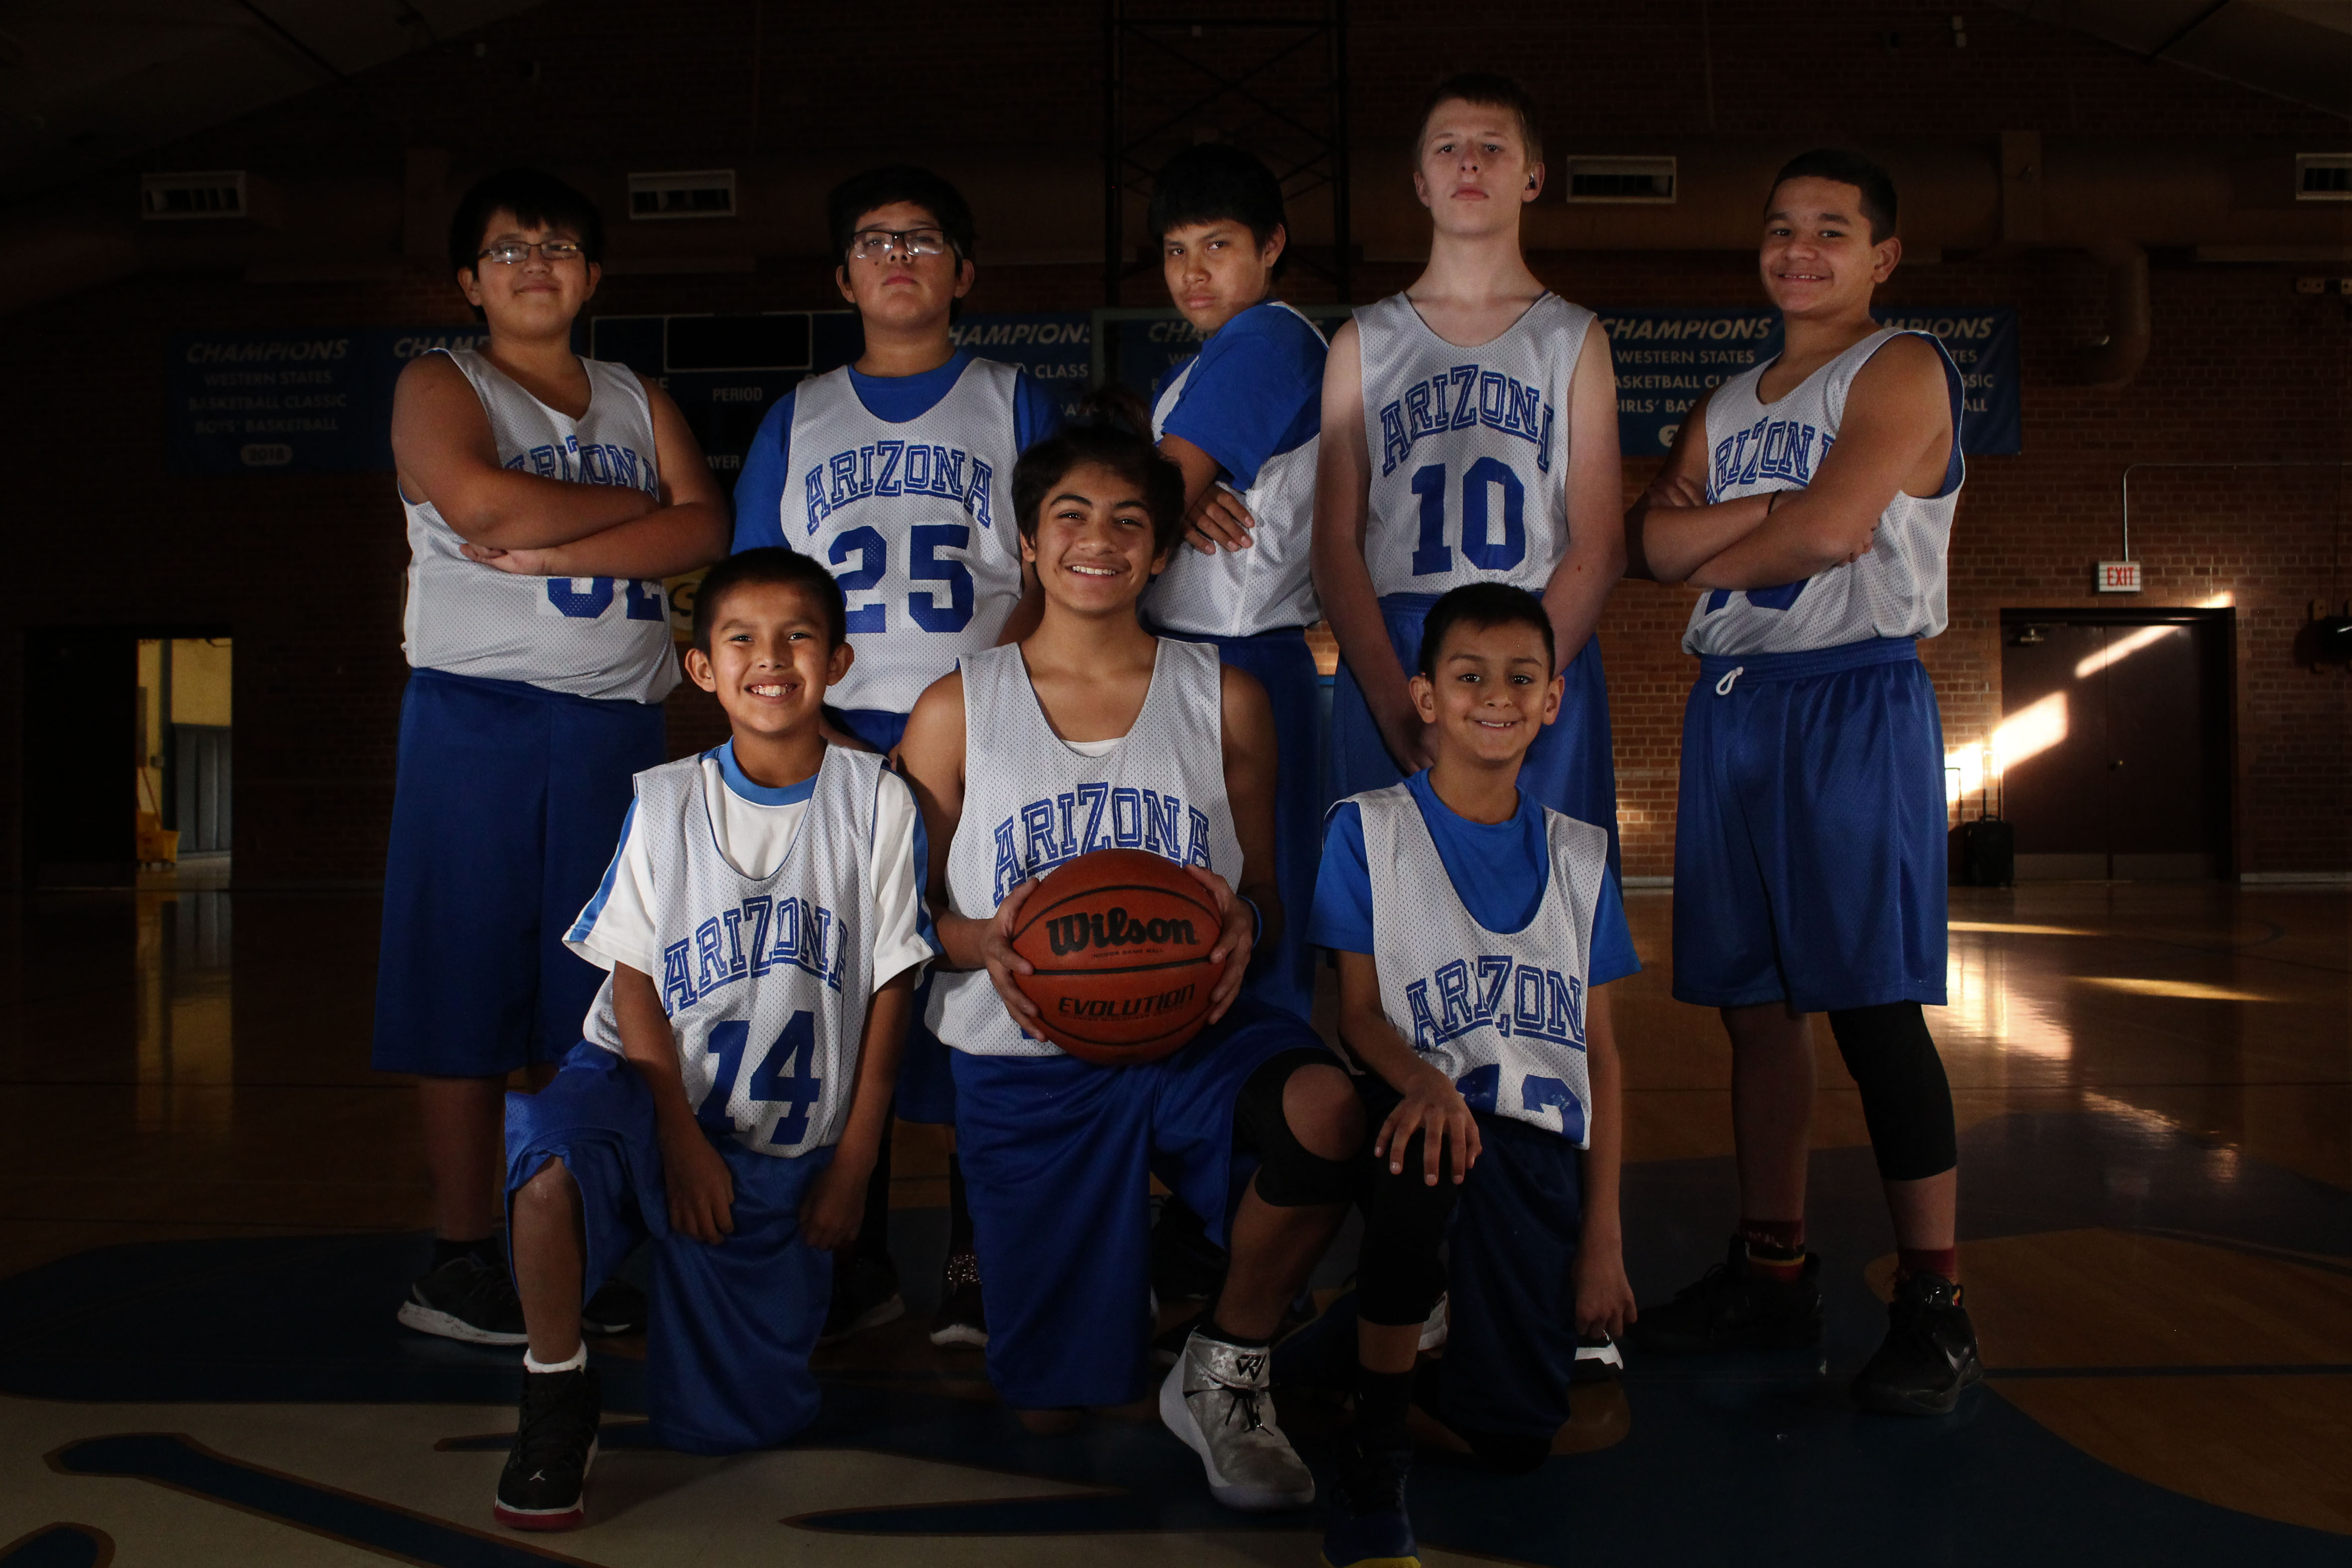 A dramatic portrait of the ASDB Middle School Boys' Basketball Team 2018-2019. They are smiling while one boy in the middle holds a basketball.